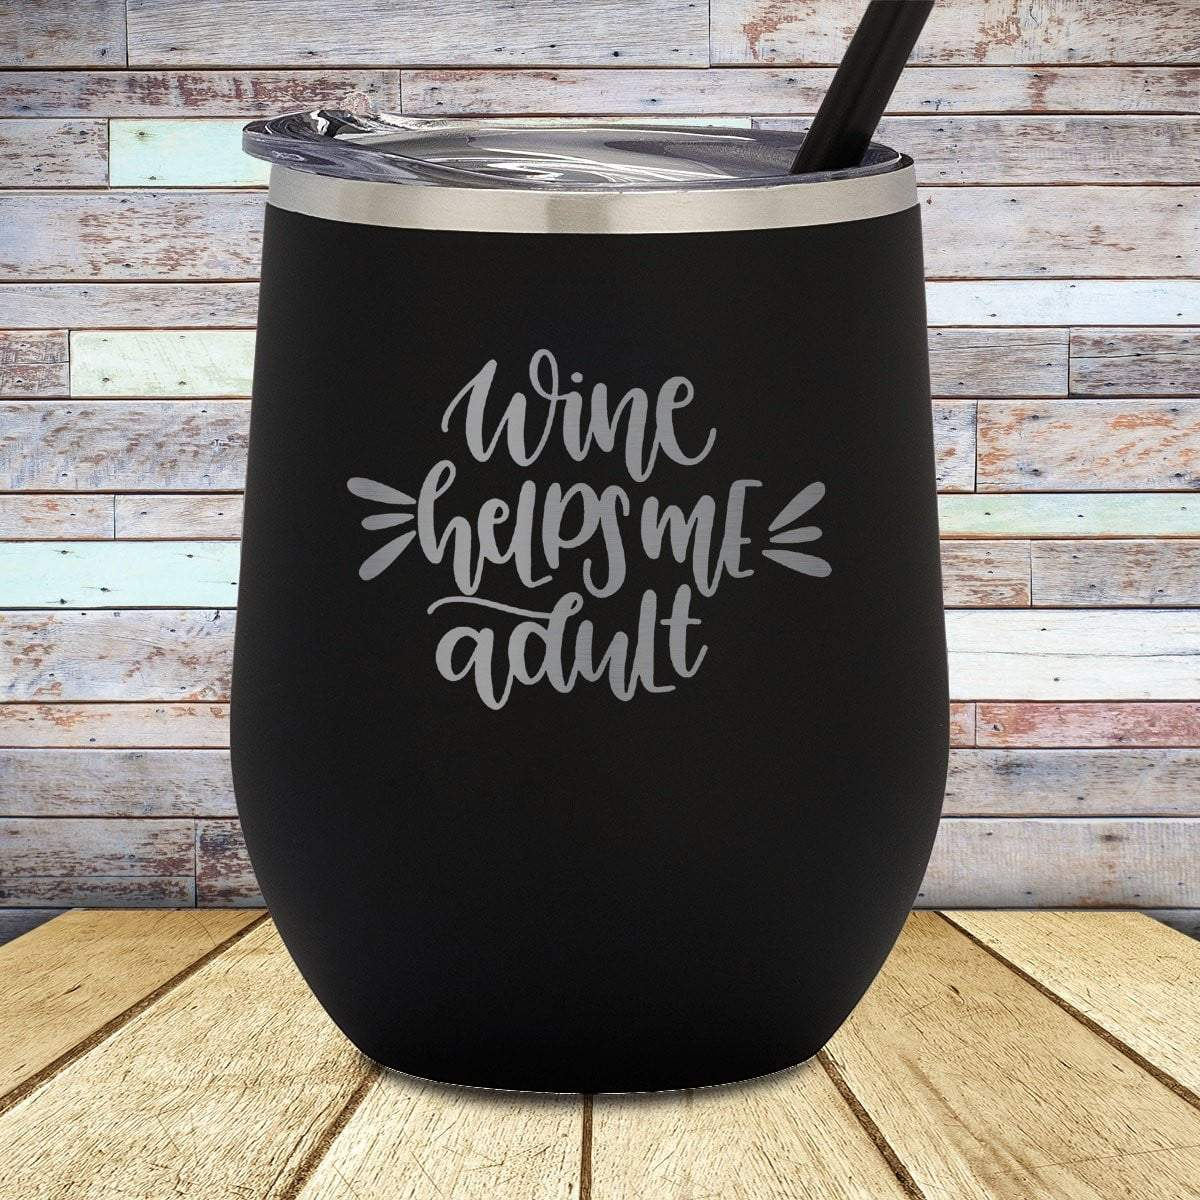 Helps Me Adult Stemless Wine Cup